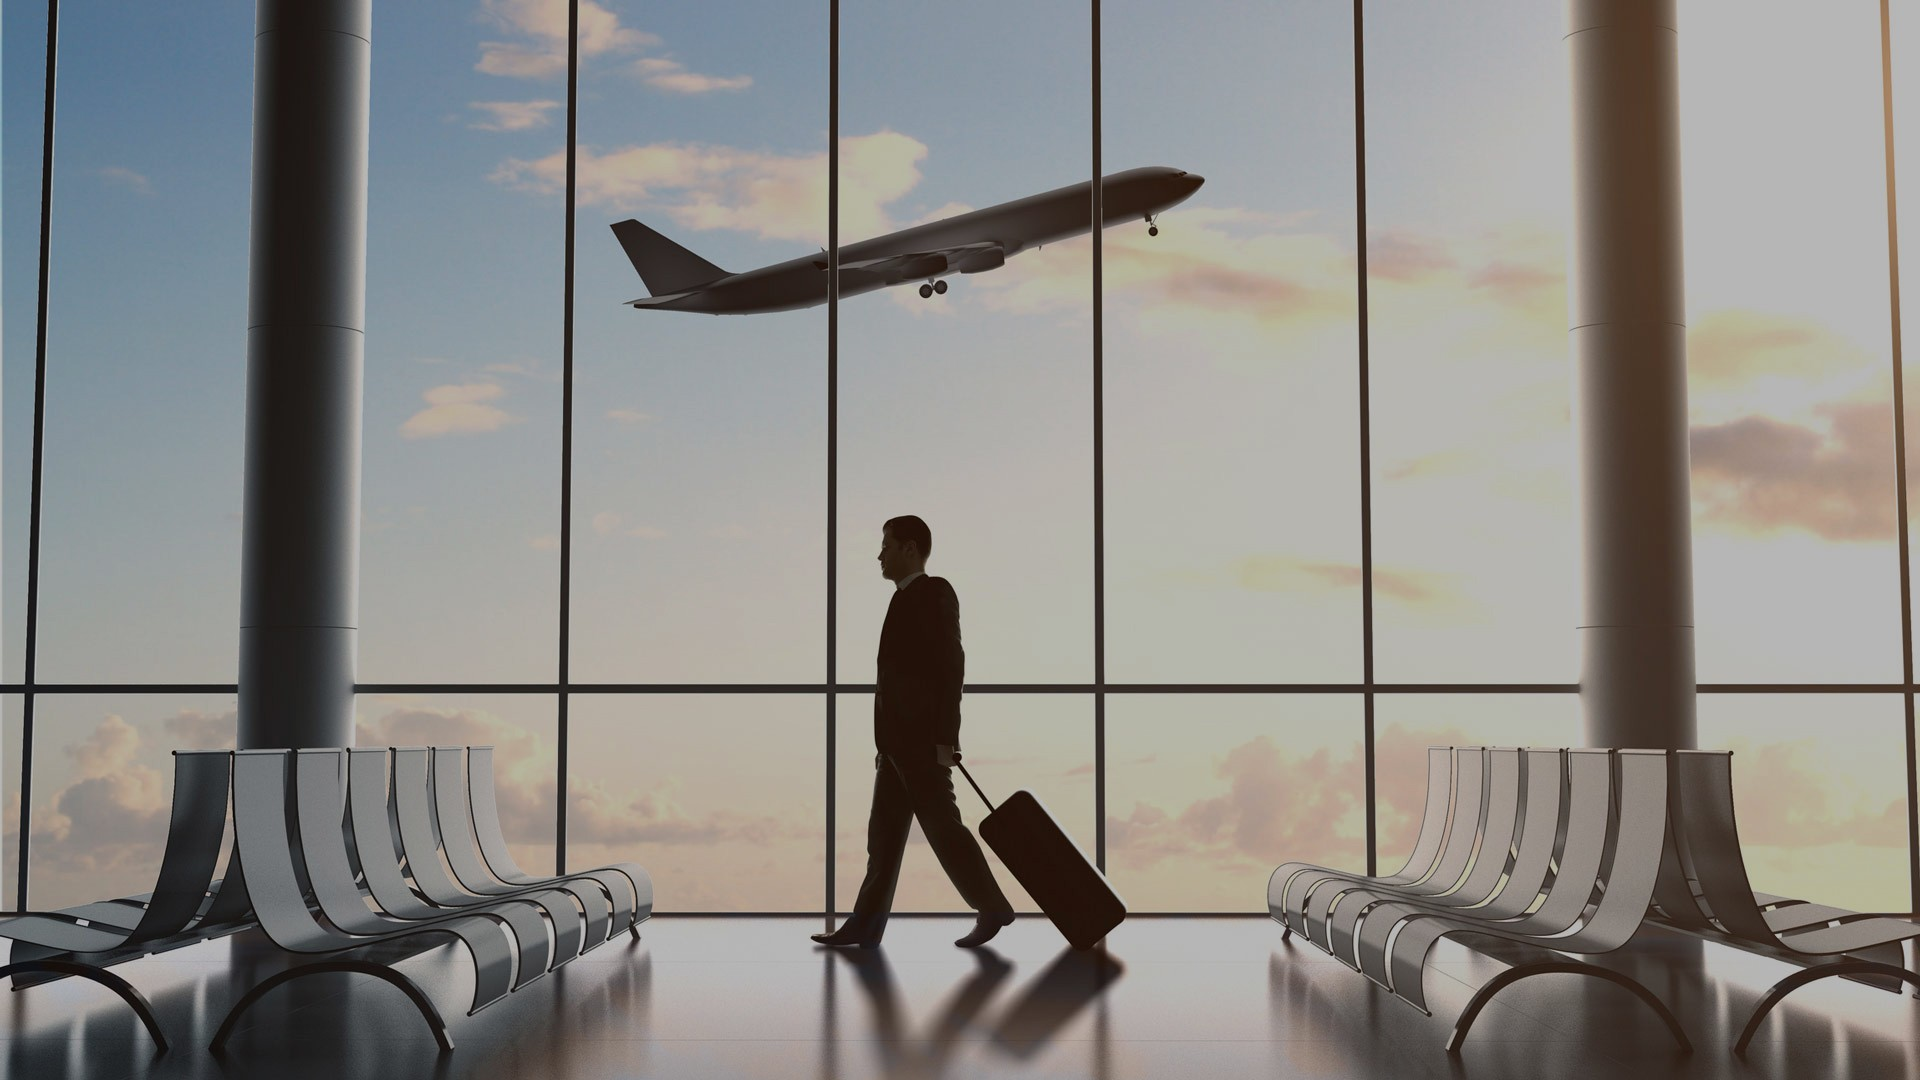 Alexandria AirPort Arrival Transfer